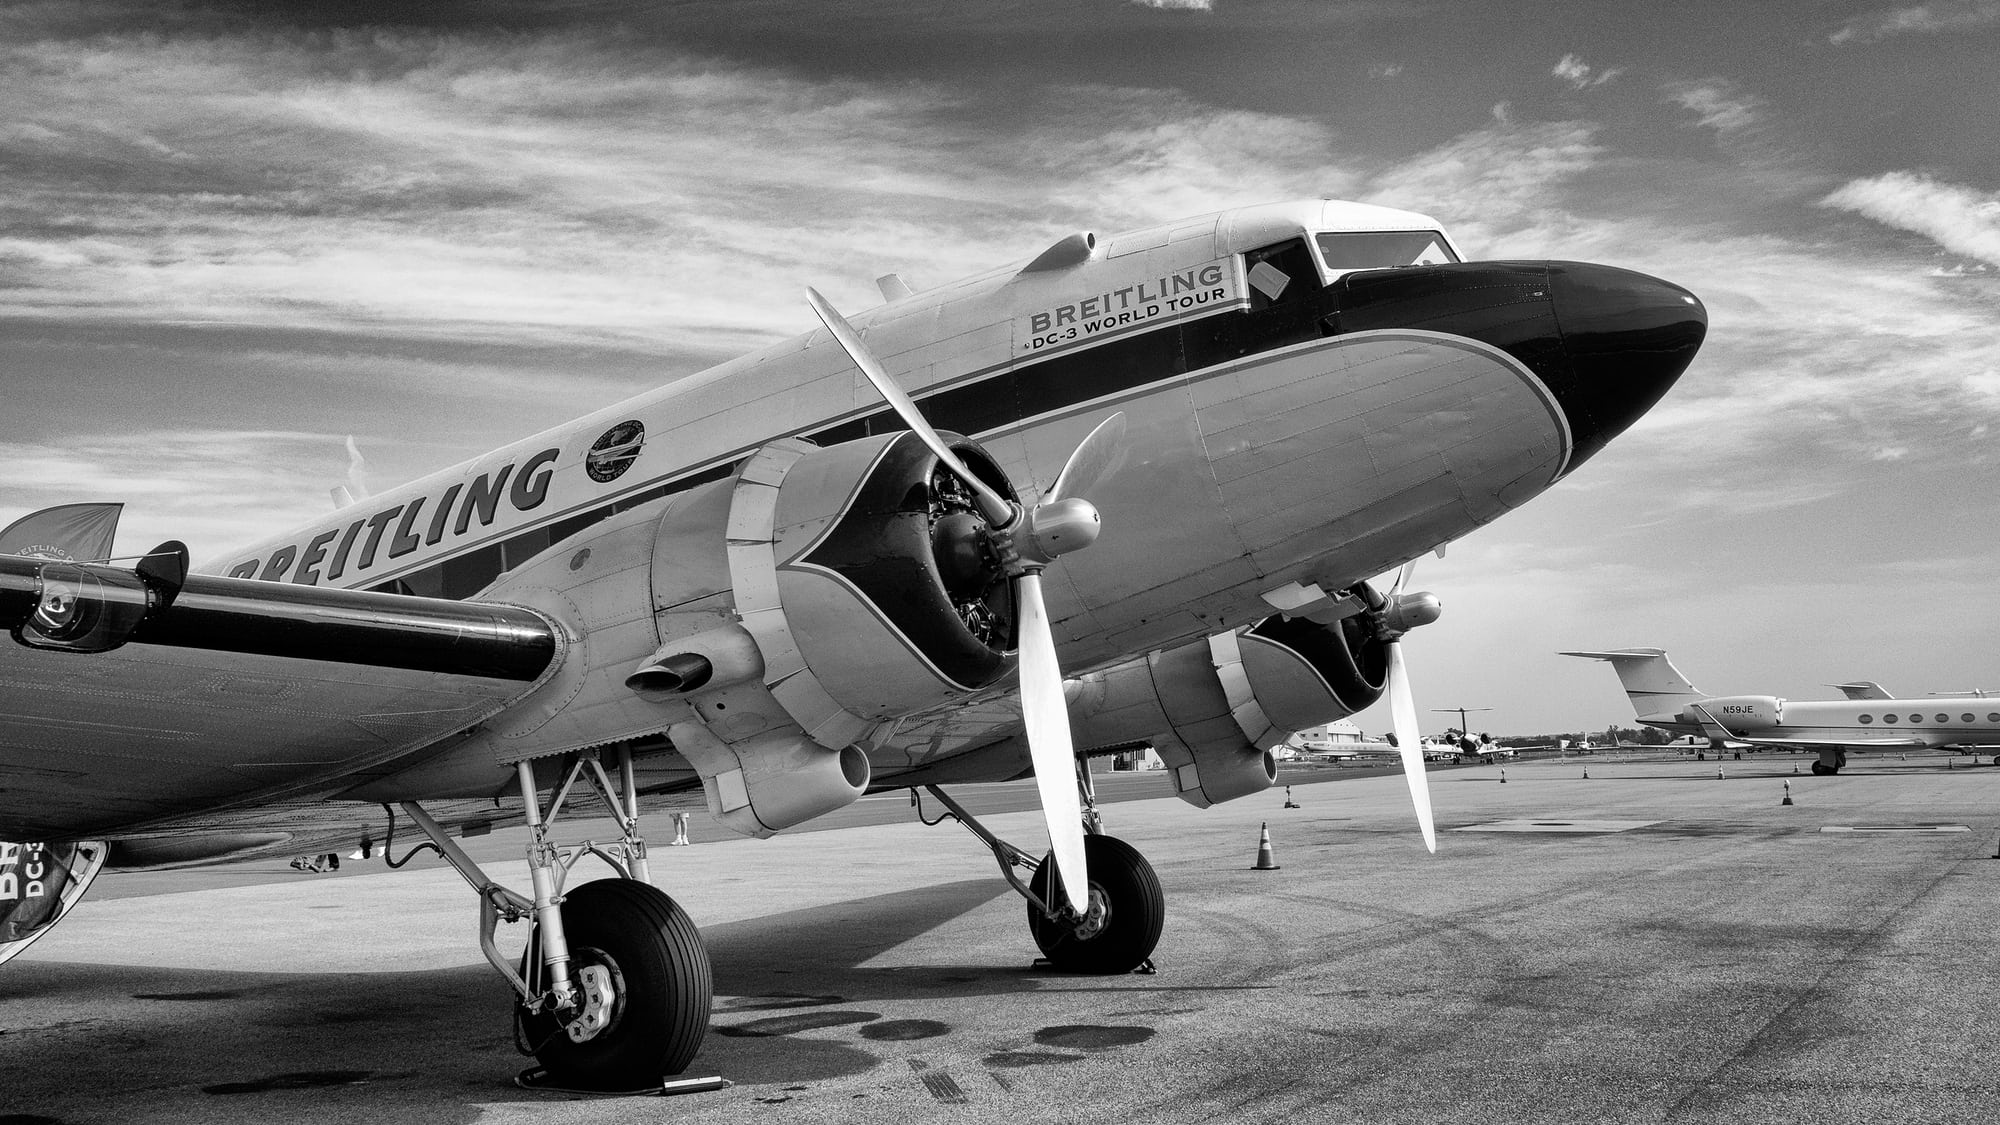 Hero.jpg?ixlib=rails 1.1 Dispatches: Breitling's DC-3 To Become Oldest Aircraft Ever To Circle The Earth Dispatches: Breitling's DC-3 To Become Oldest Aircraft Ever To Circle The Earth hero